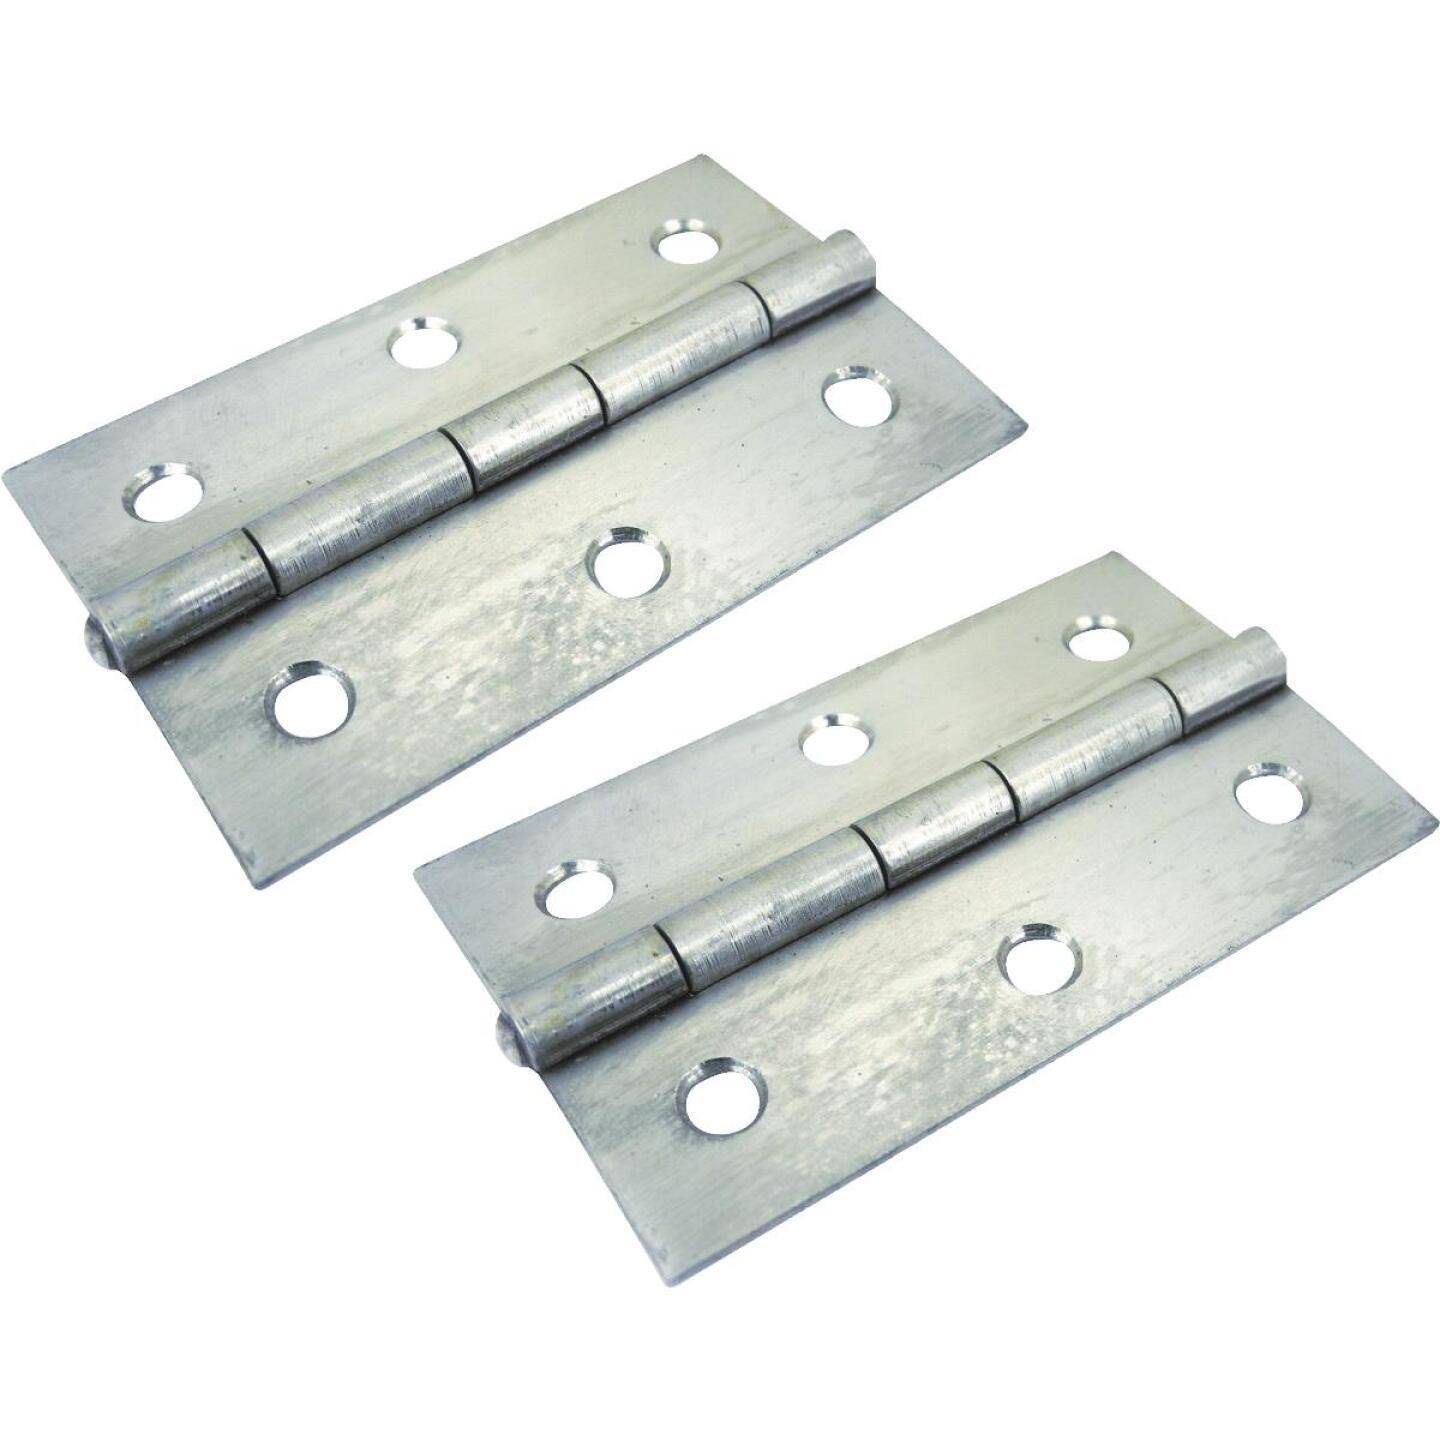 Seachoice 2 In. x 3 In. Stainless Steel Extruded Butt Hinge (2-Pack) Image 1